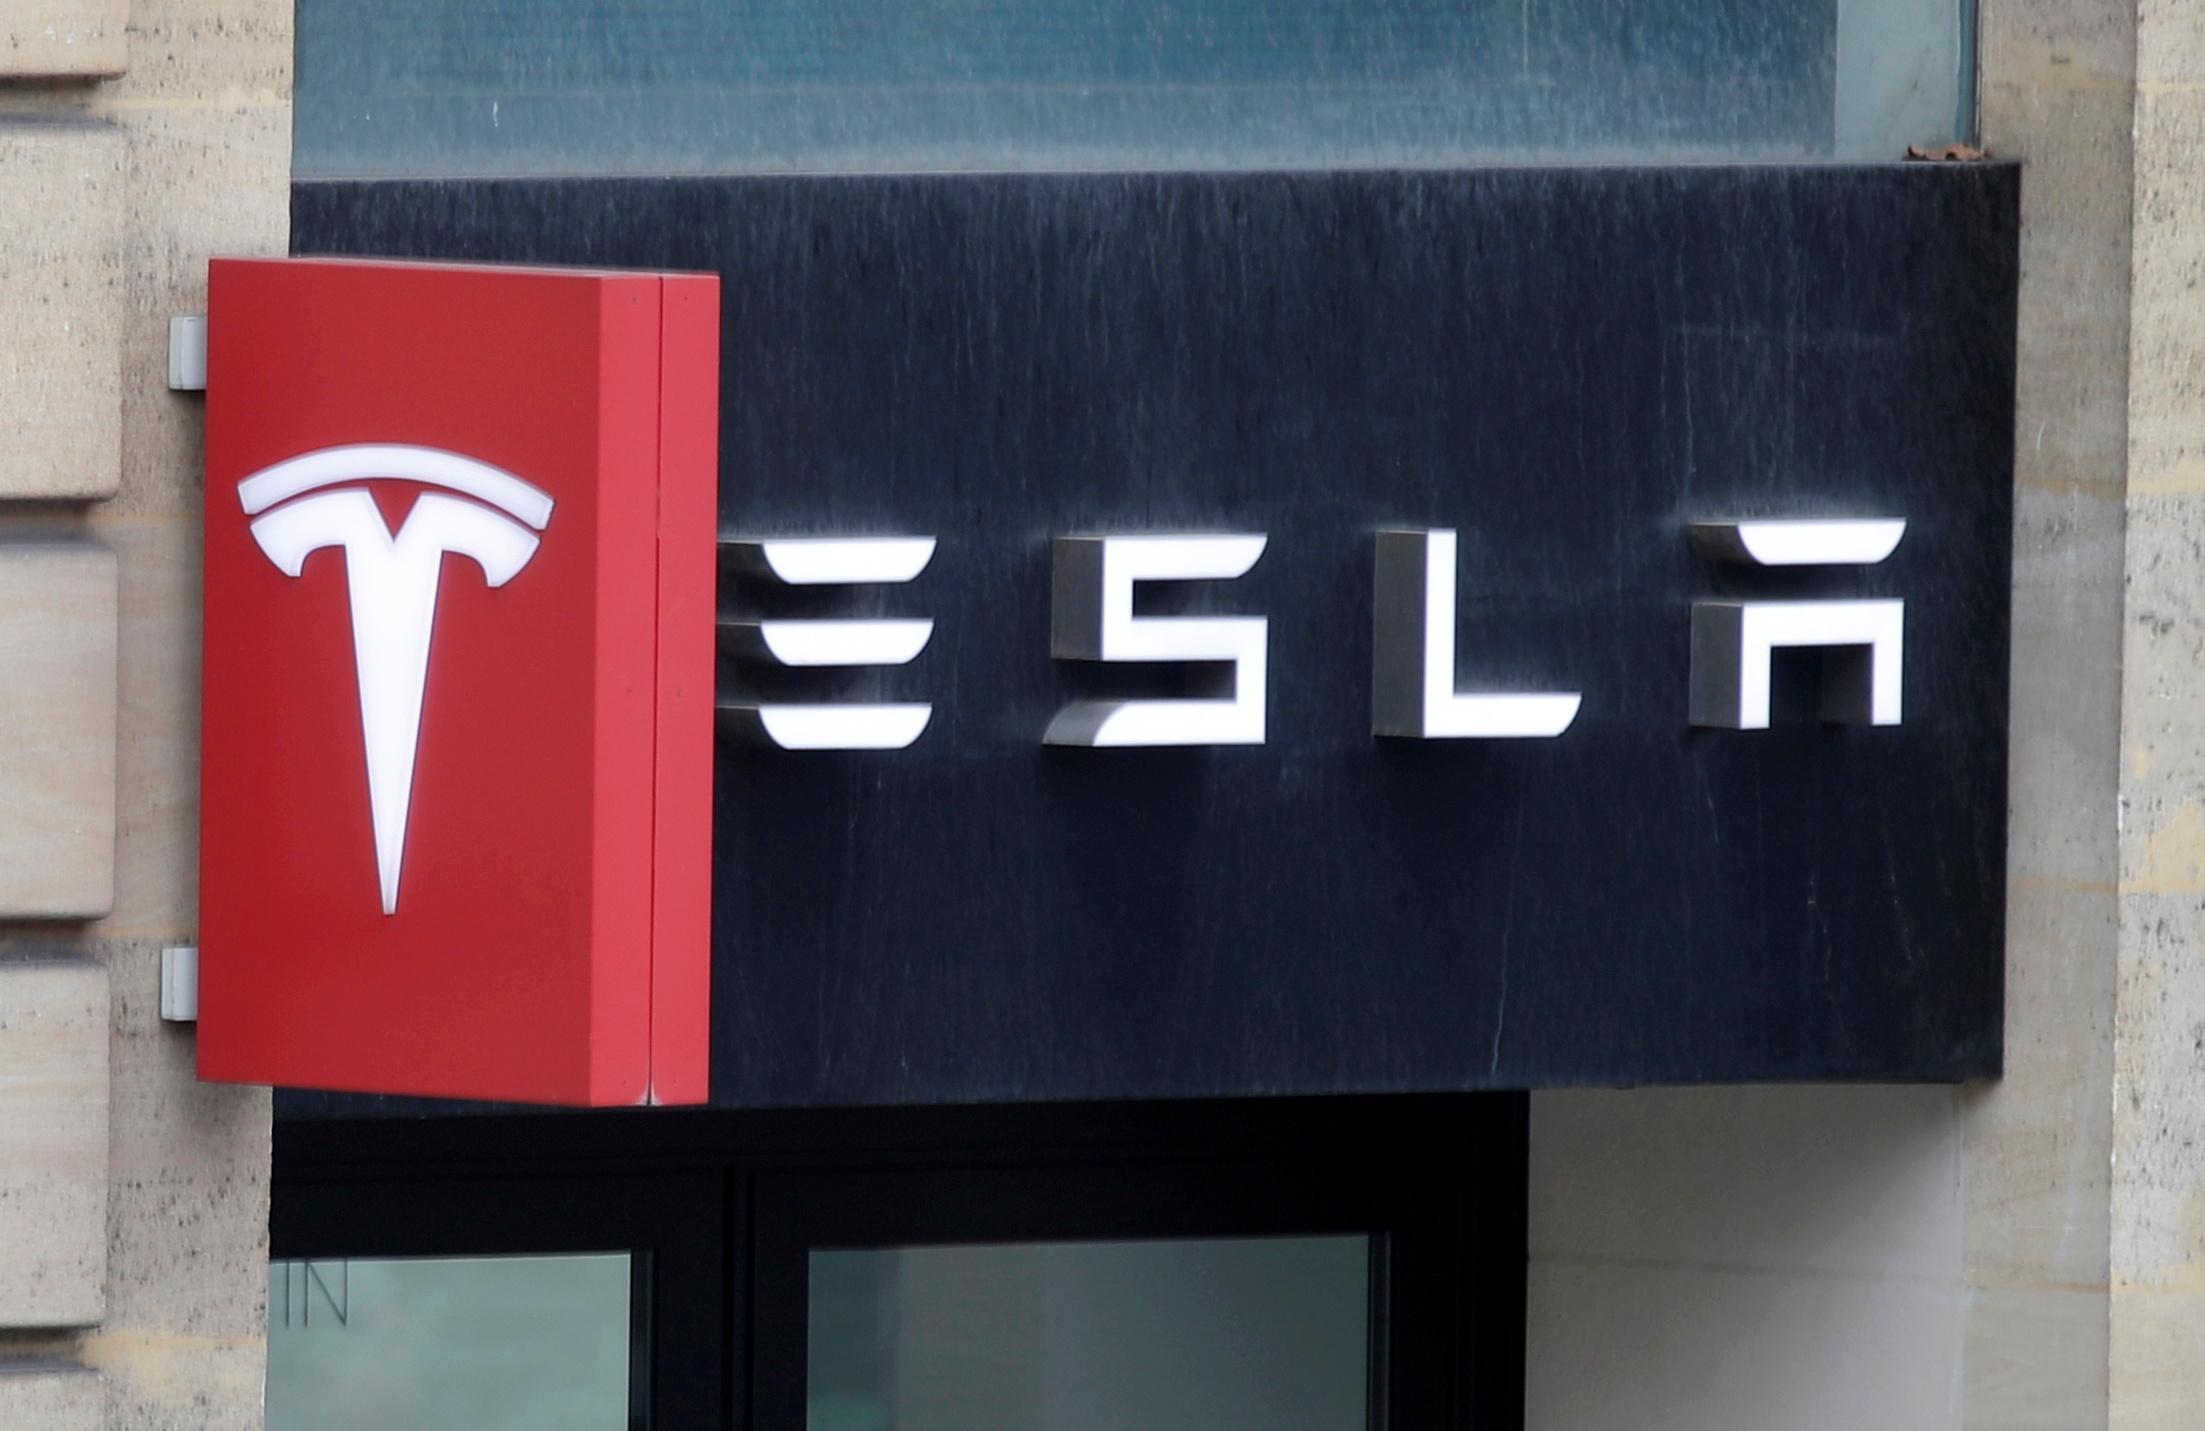 The logo of Tesla is seen on a store in Paris, France, October 30, 2020. REUTERS/Charles Platiau